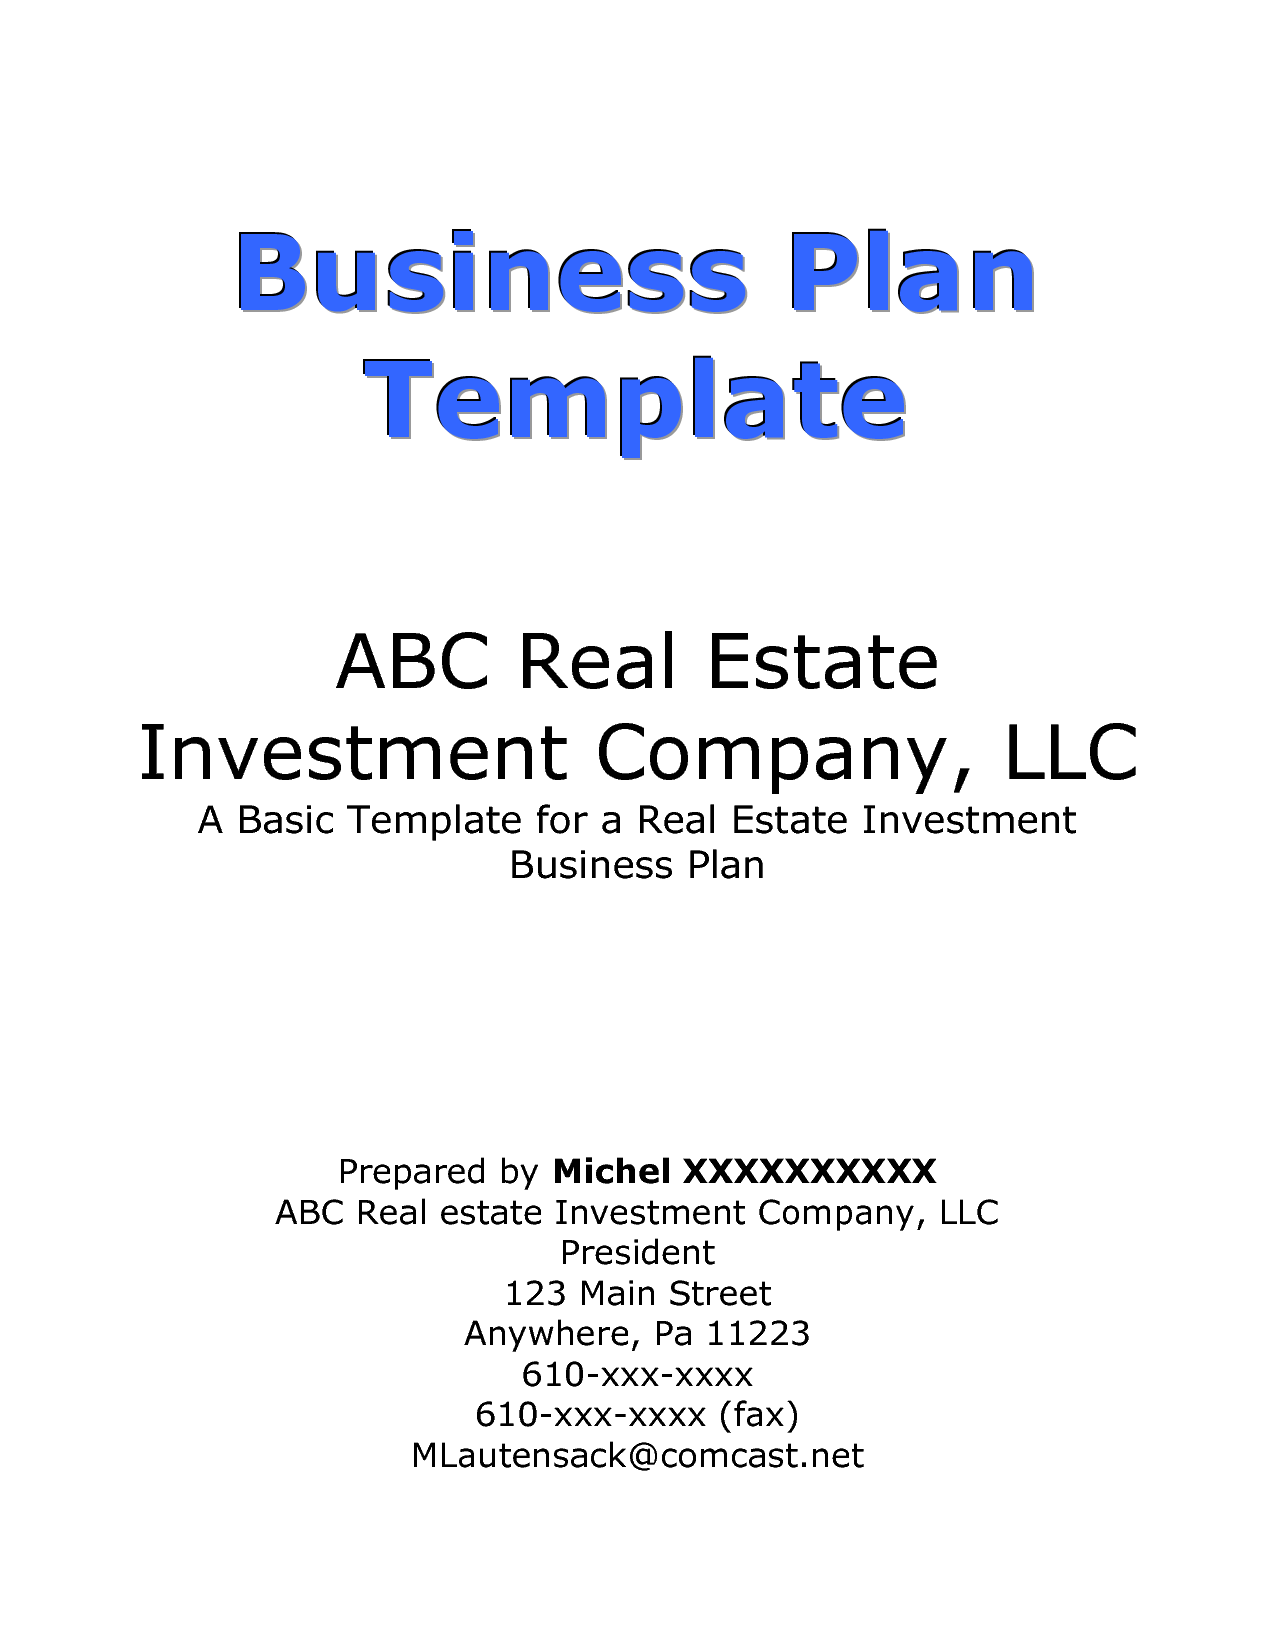 Free business plan cover sheet template